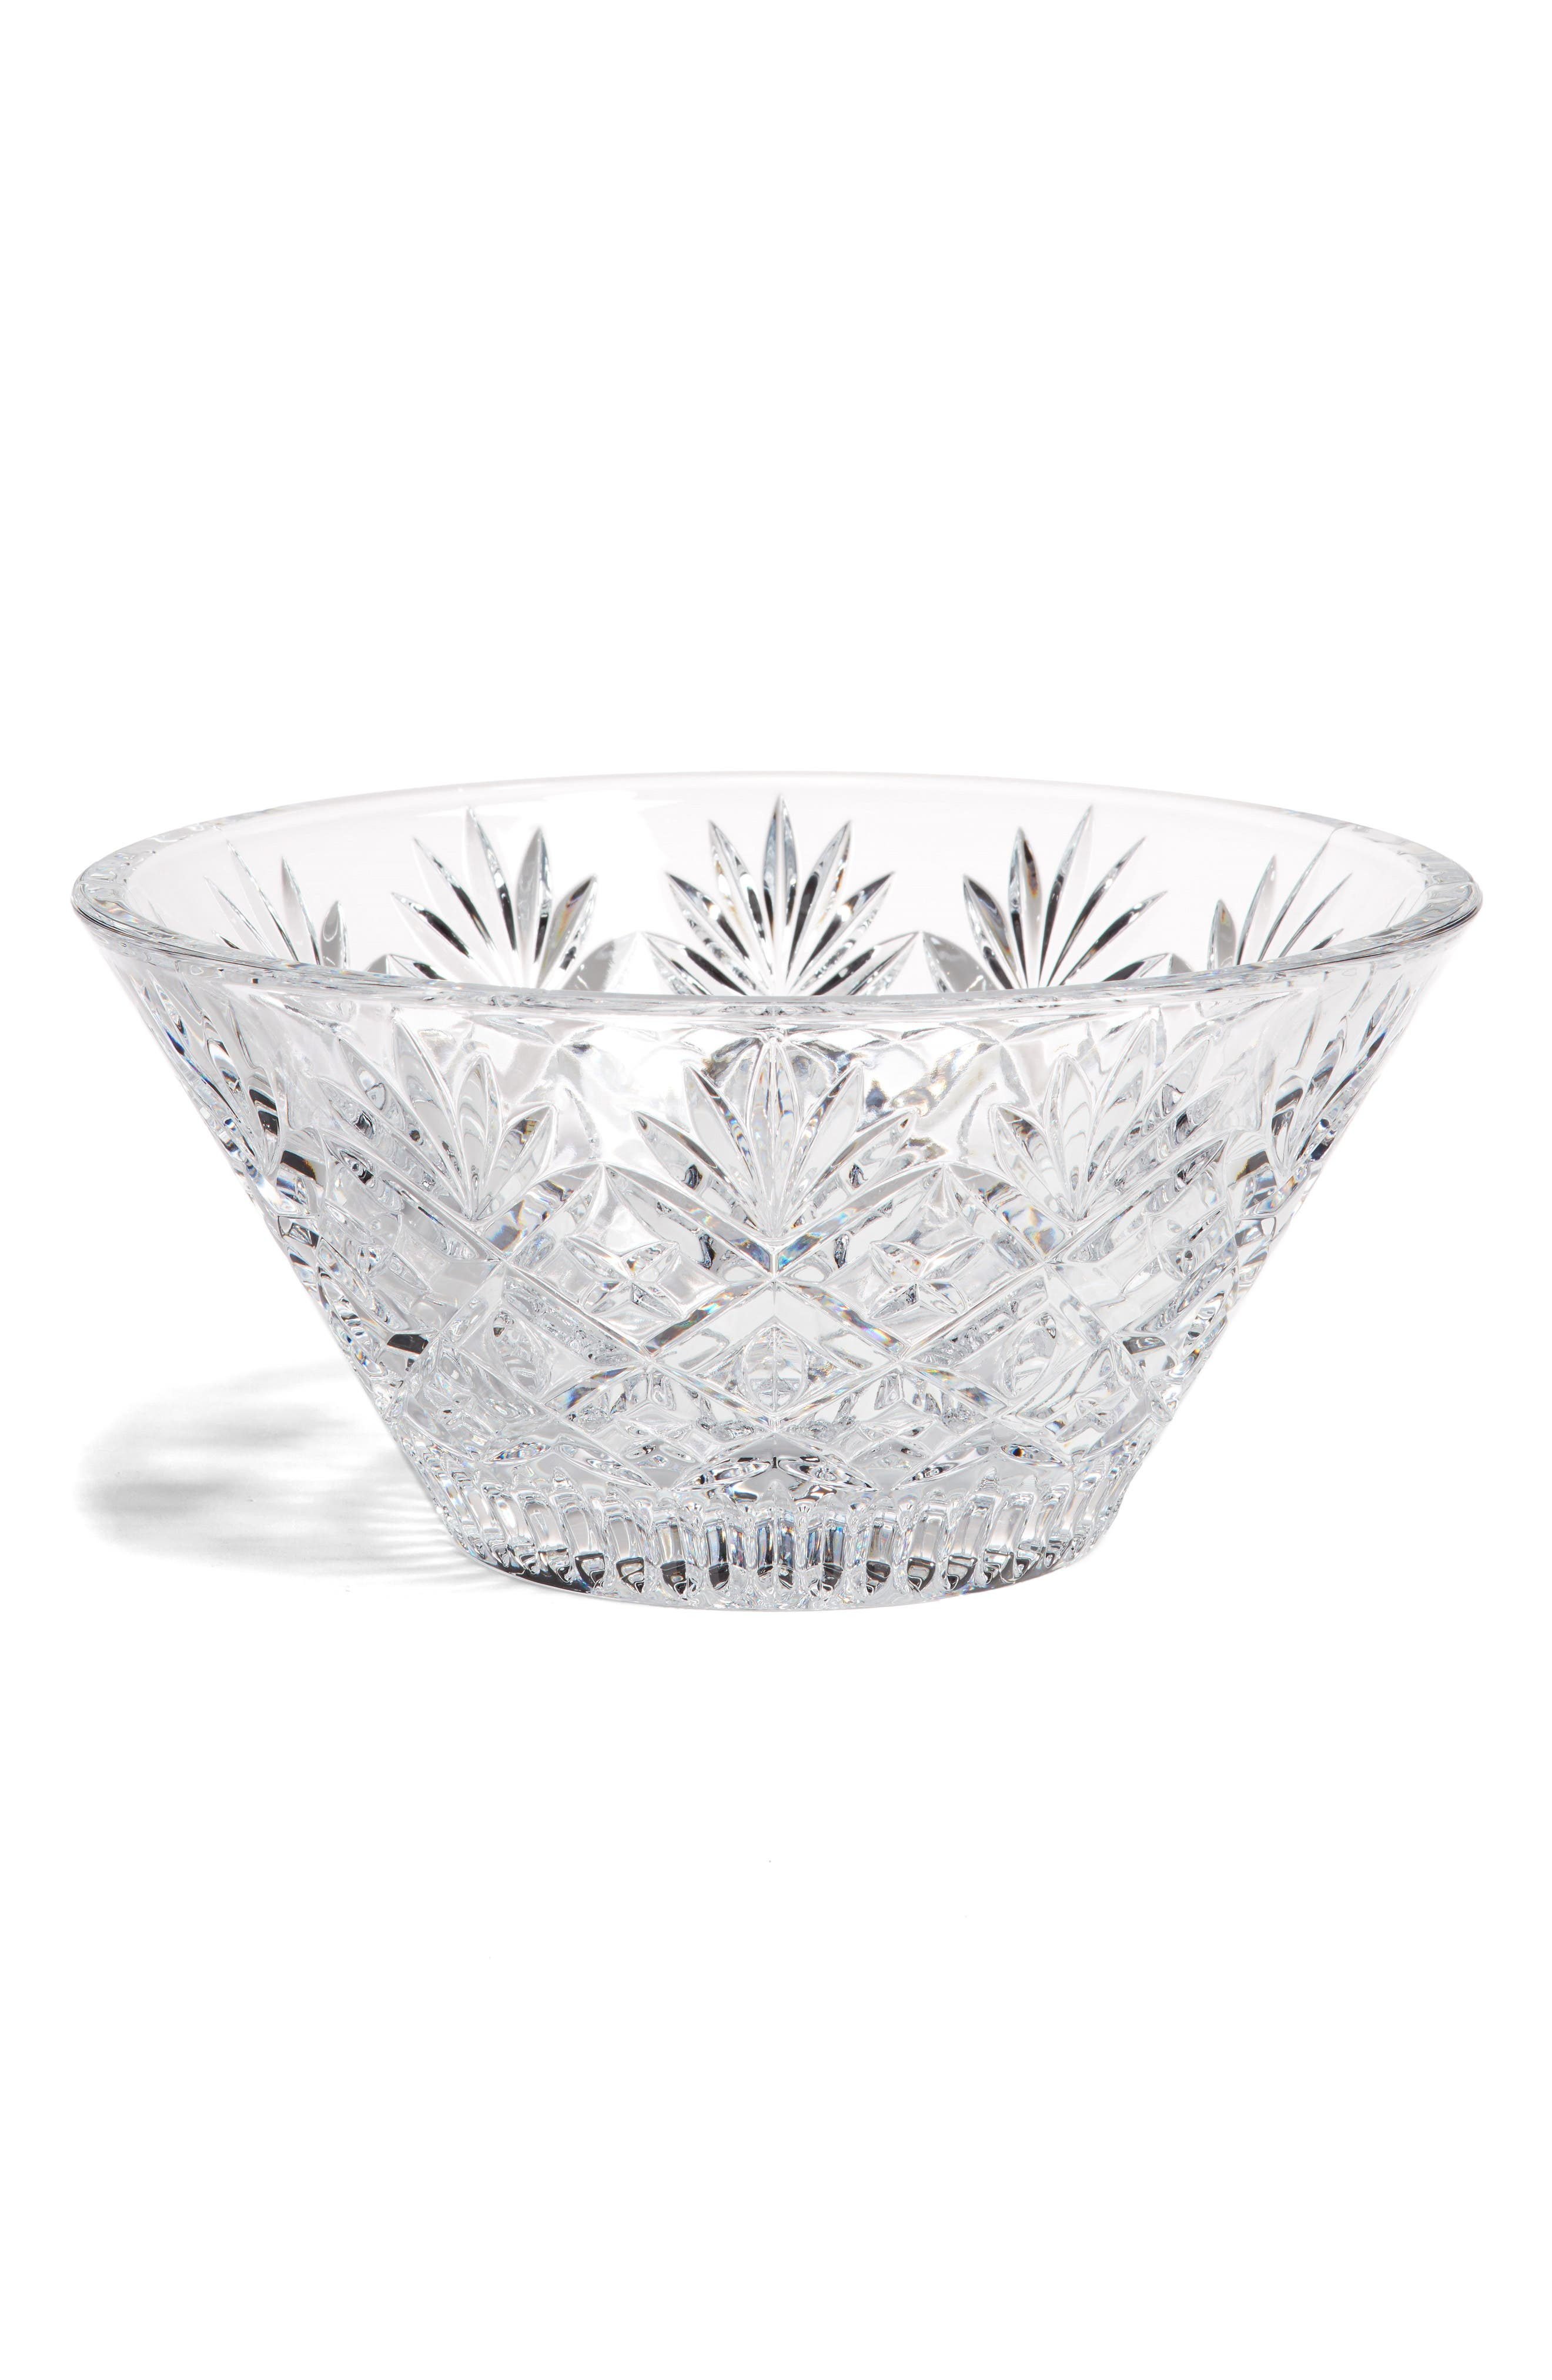 Northbridge Lead Crystal Bowl,                             Main thumbnail 1, color,                             100